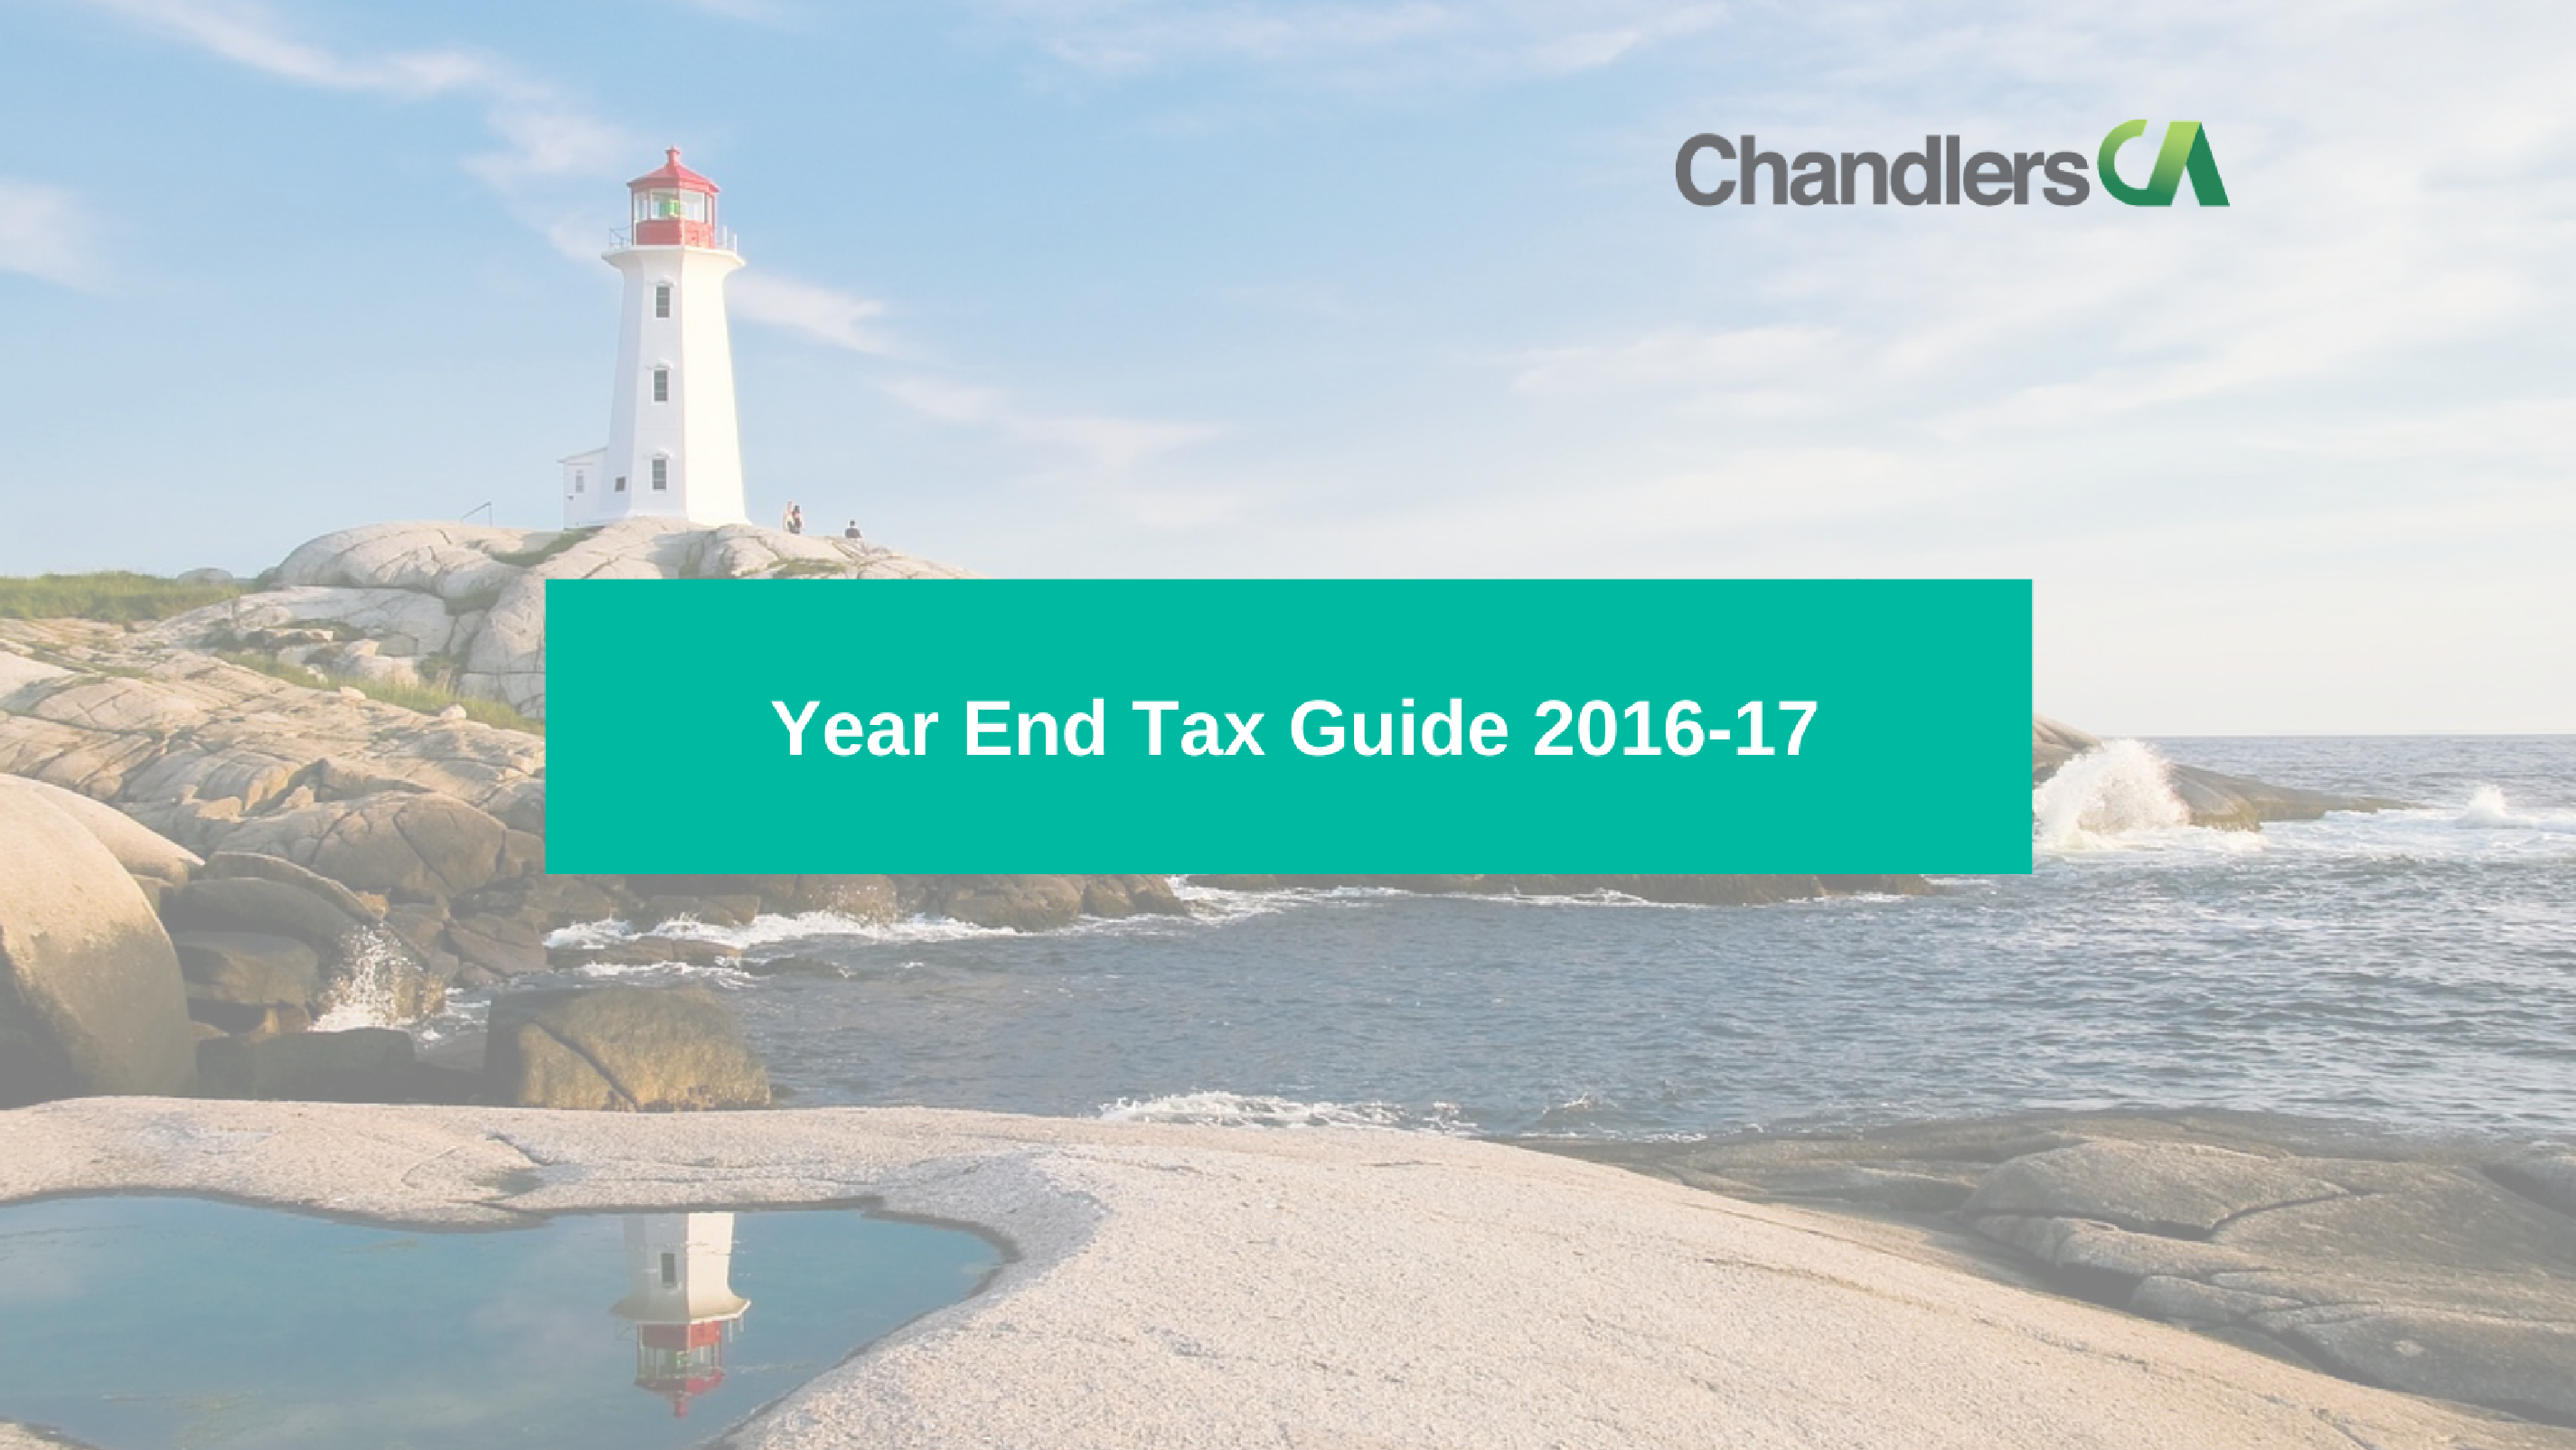 Year end tax guide 2016-17